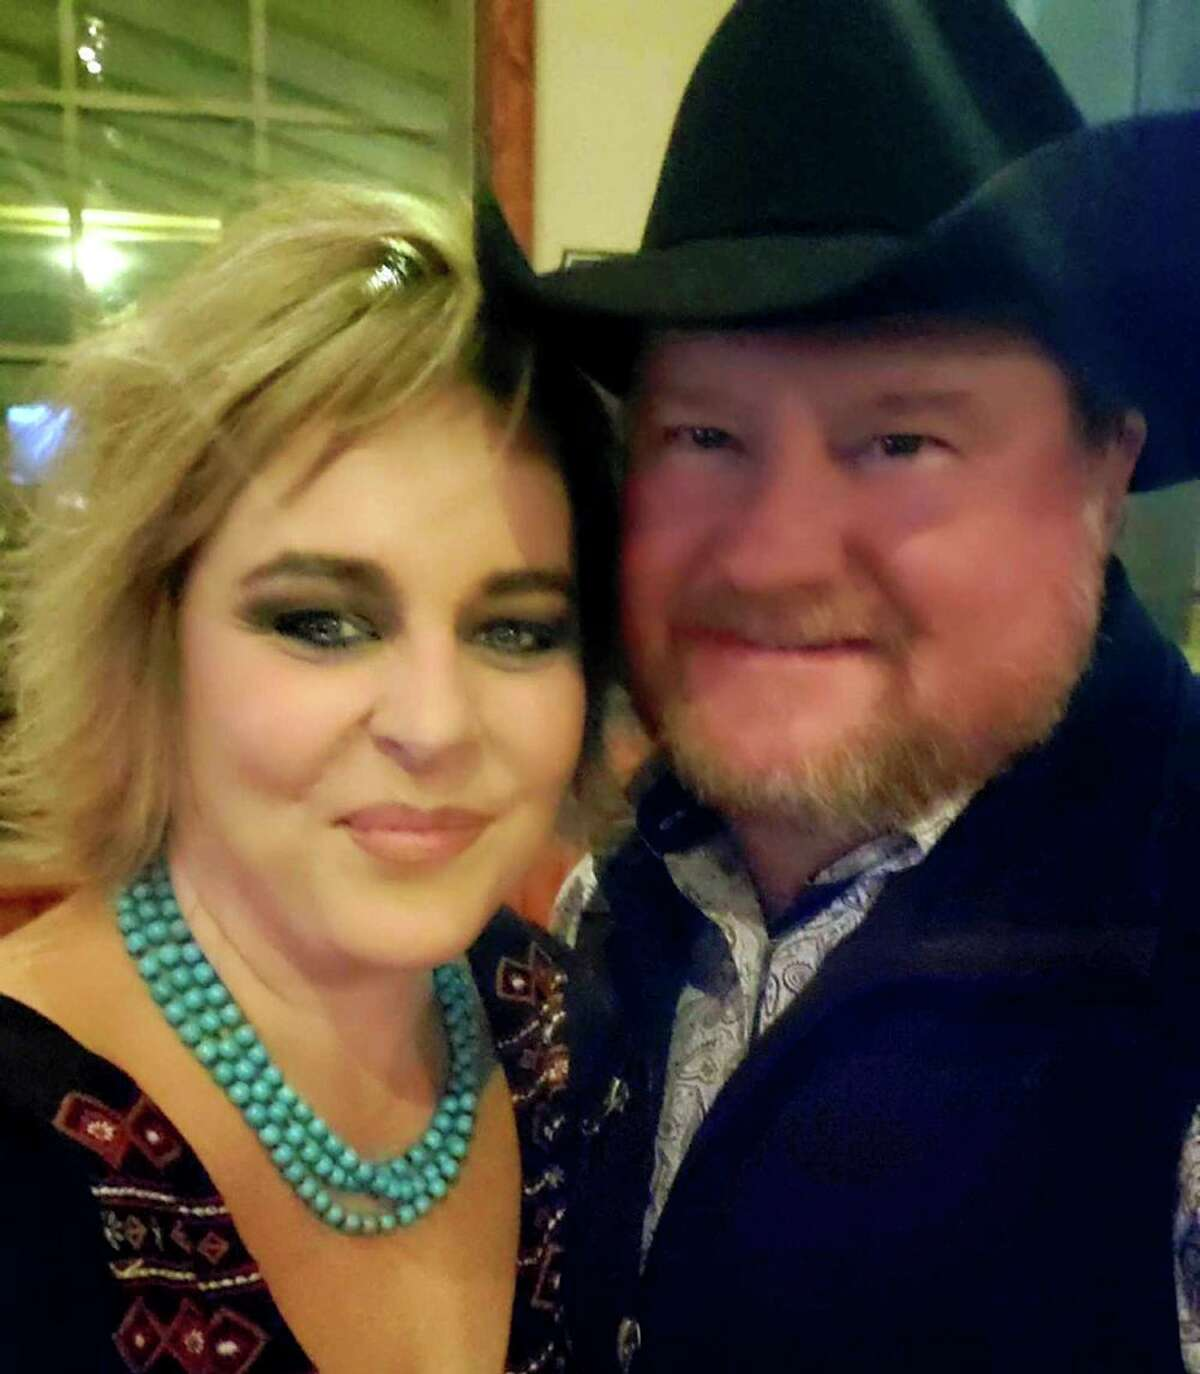 Jimmie Hayden was first COVID-19 patient to receive plasma therapy in San Antonio. He is pictured with his wife, Ashley Hayden.